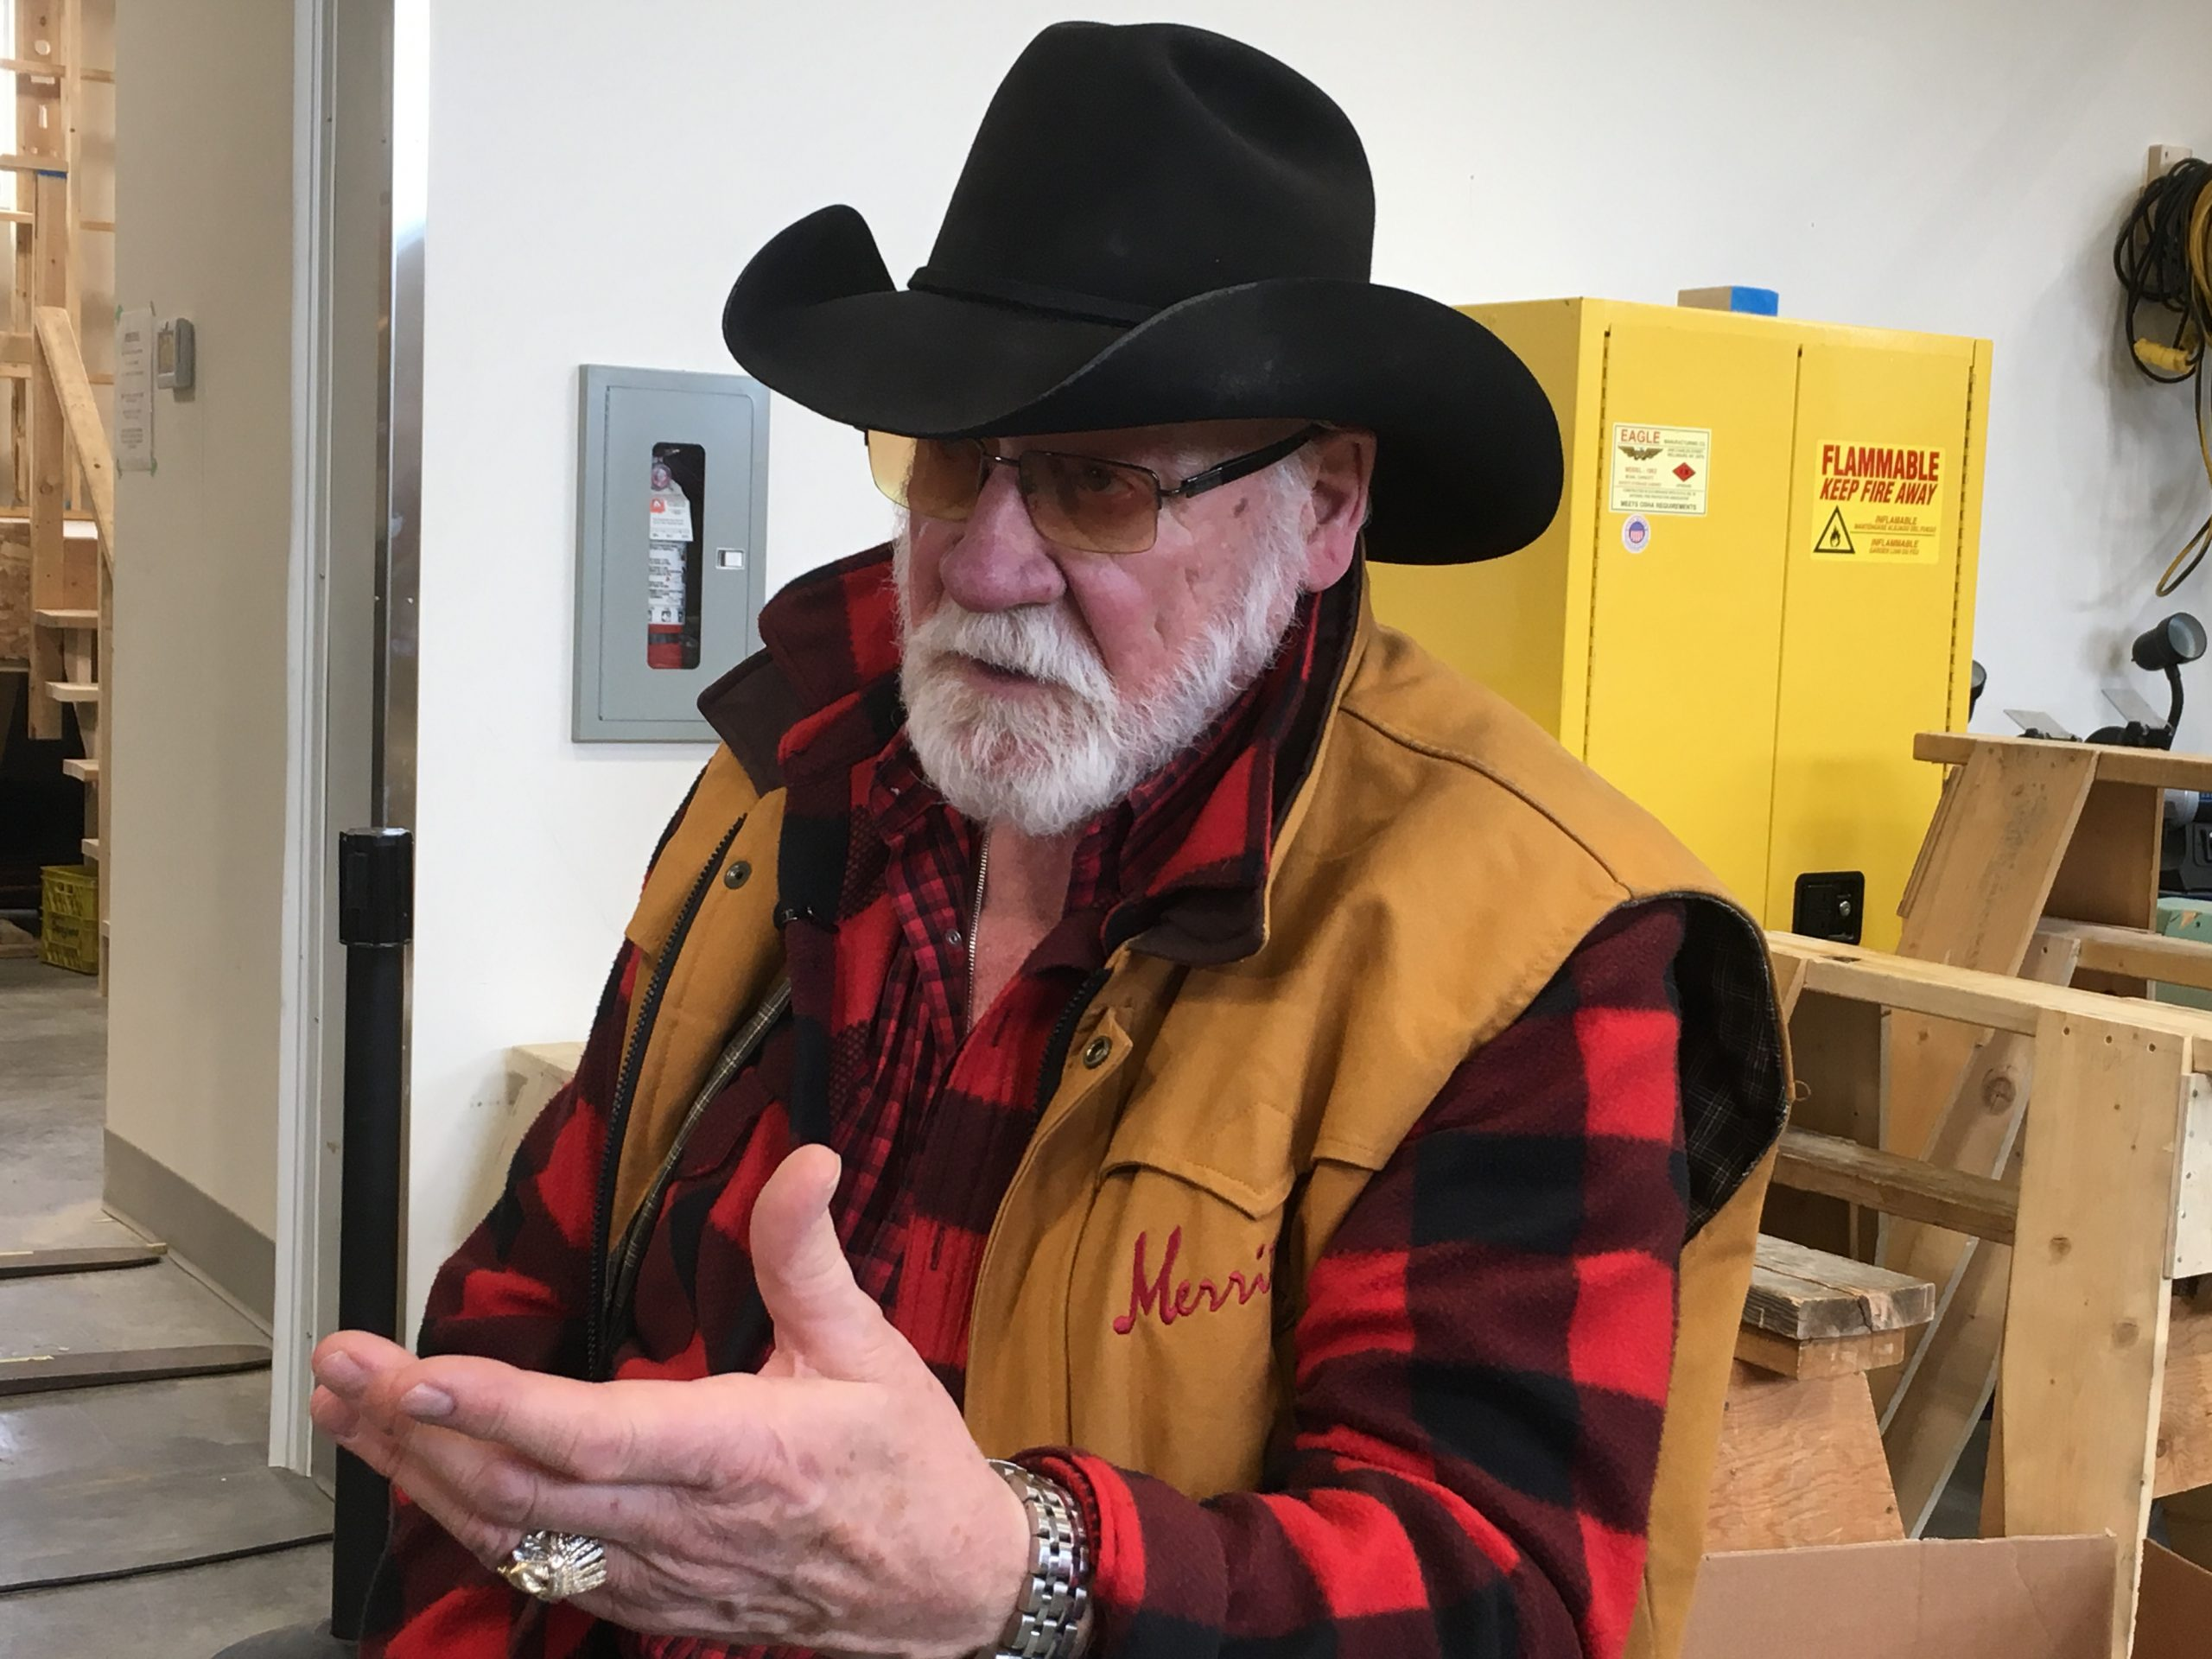 Outgoing Merritt mayor happy with bus changes in city